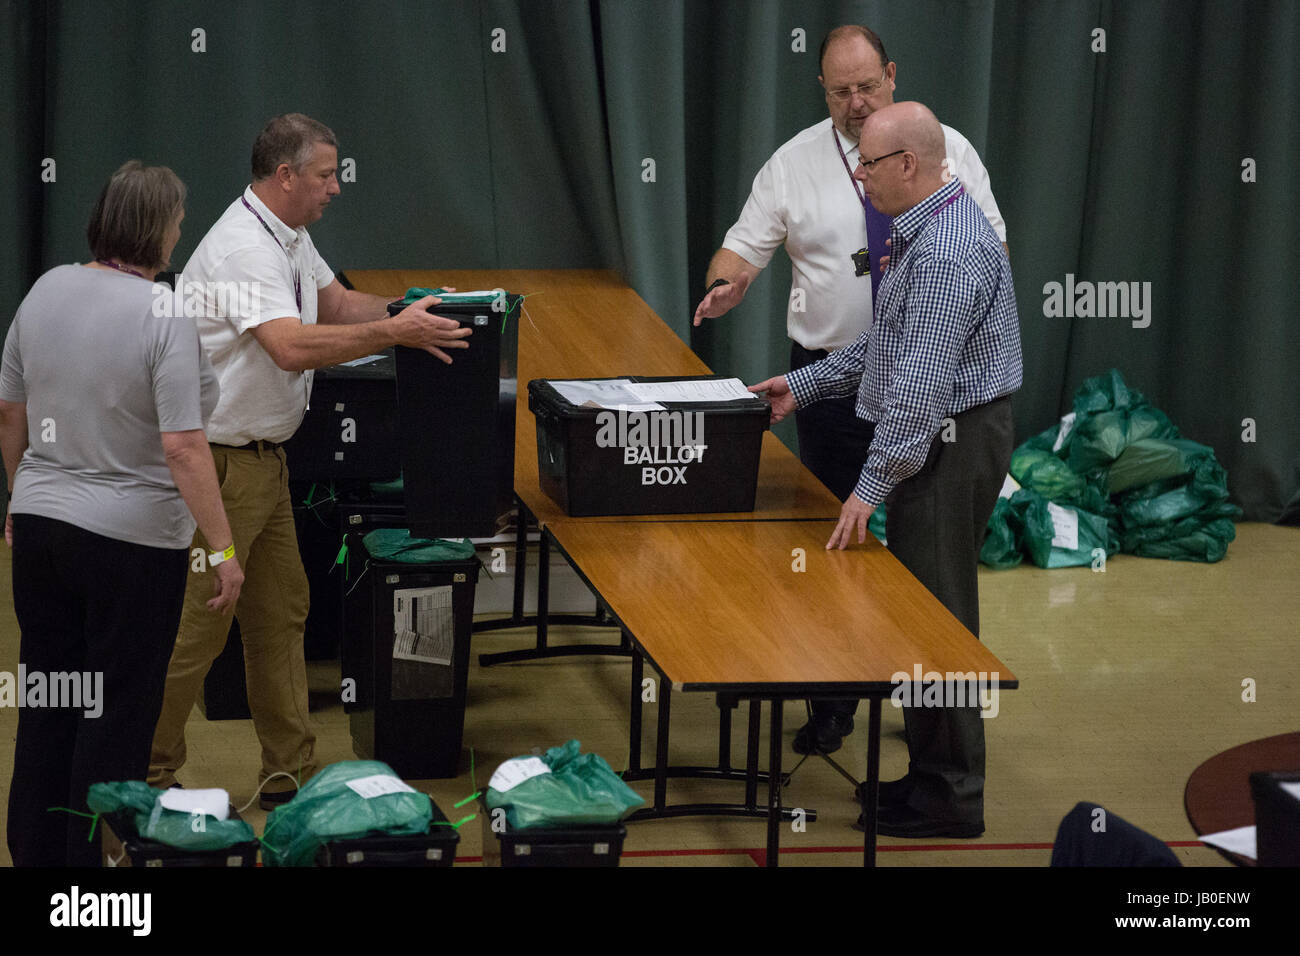 Maidenhead, UK. 8th June, 2017. Ballot boxes awaiting counting for the Windsor constituency. Credit: Mark Kerrison/Alamy - Stock Image